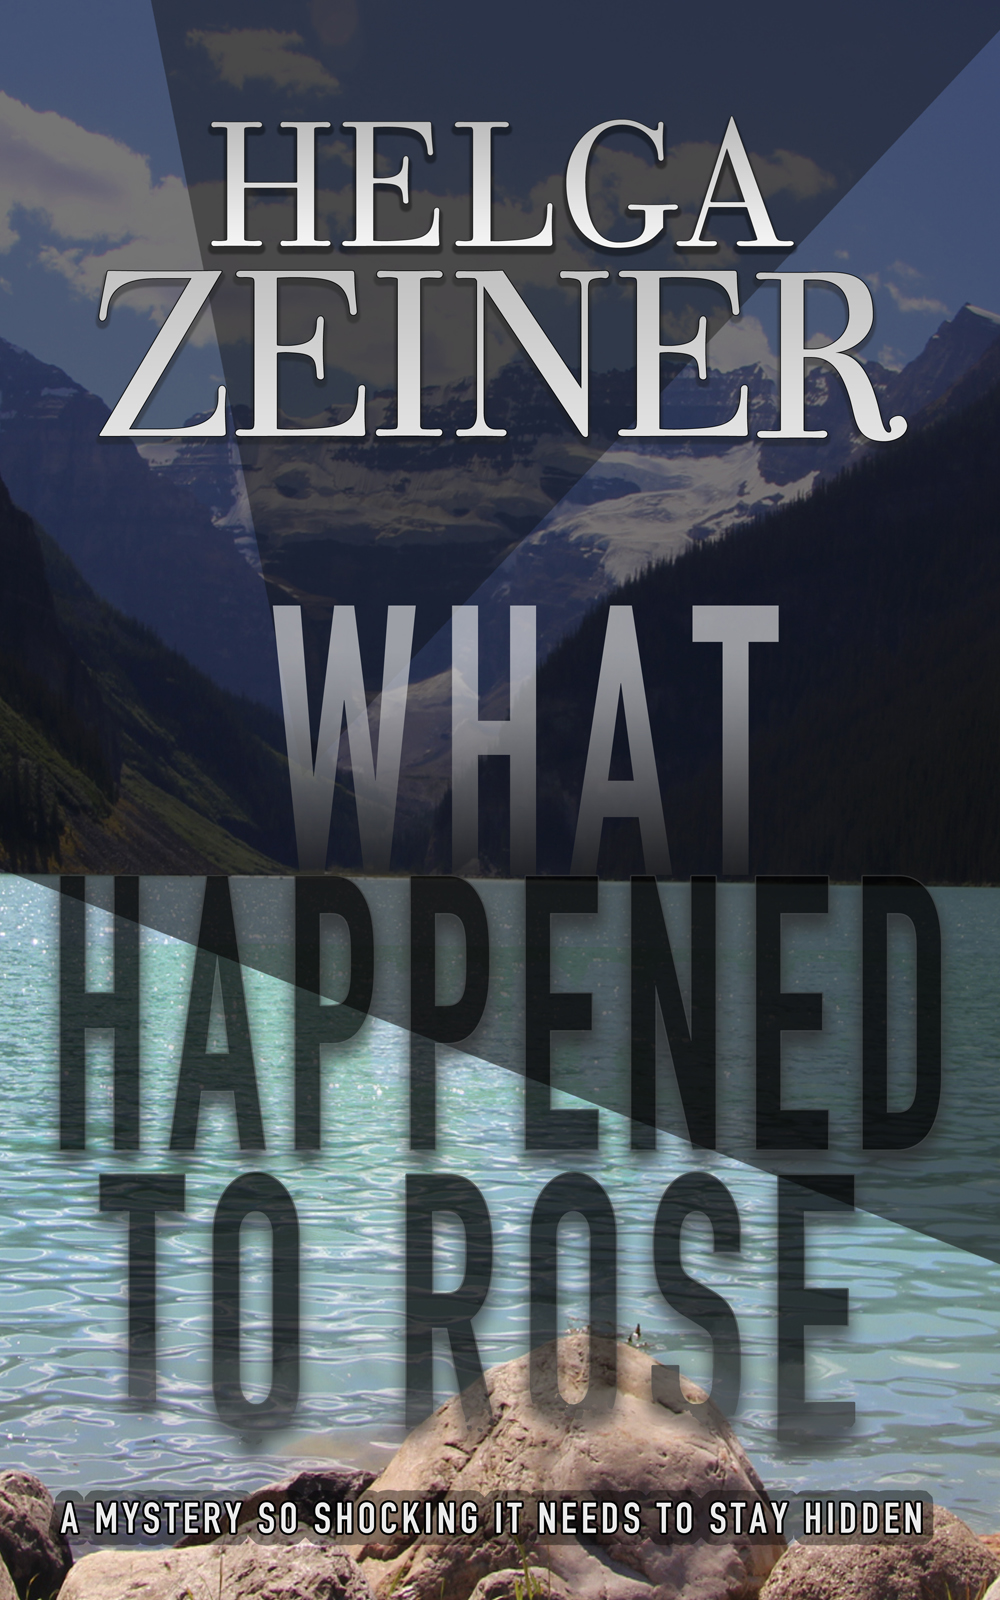 What Happened to Rose by Helga Zeiner